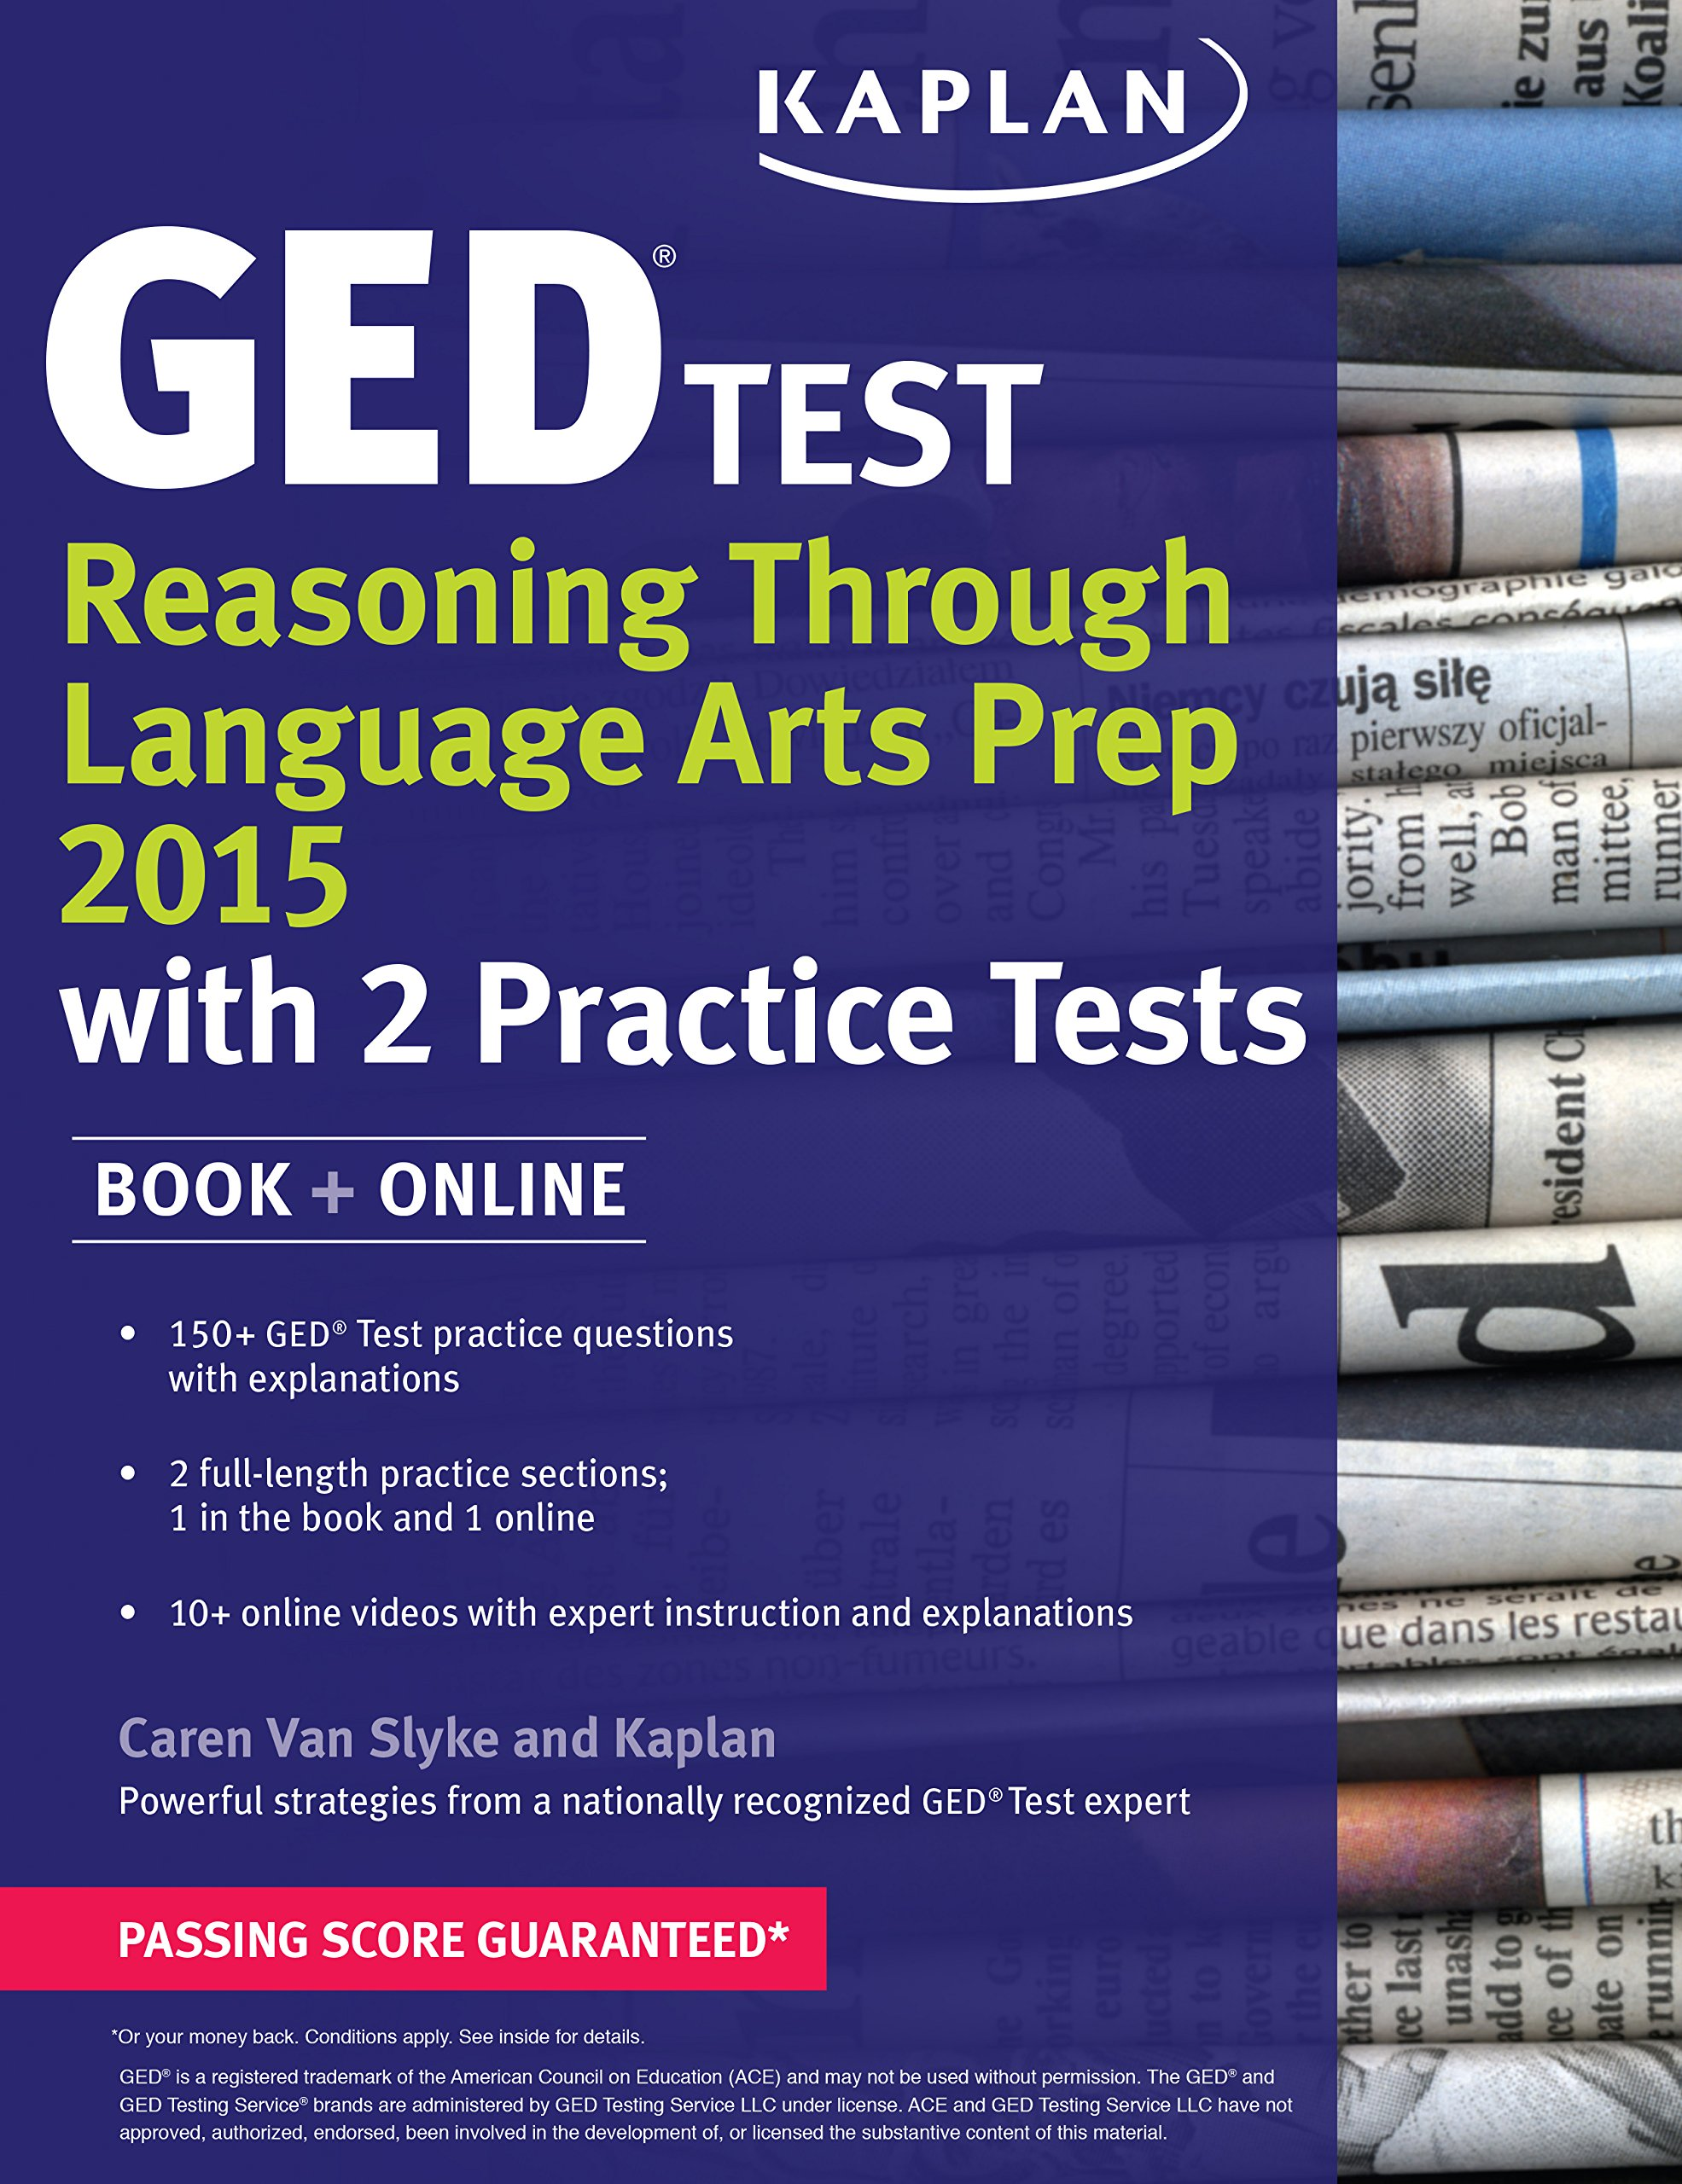 Kaplan GED Test Reasoning Through Language Arts Prep 2015: Book + Online (Kaplan Test Prep) by Kaplan Publishing